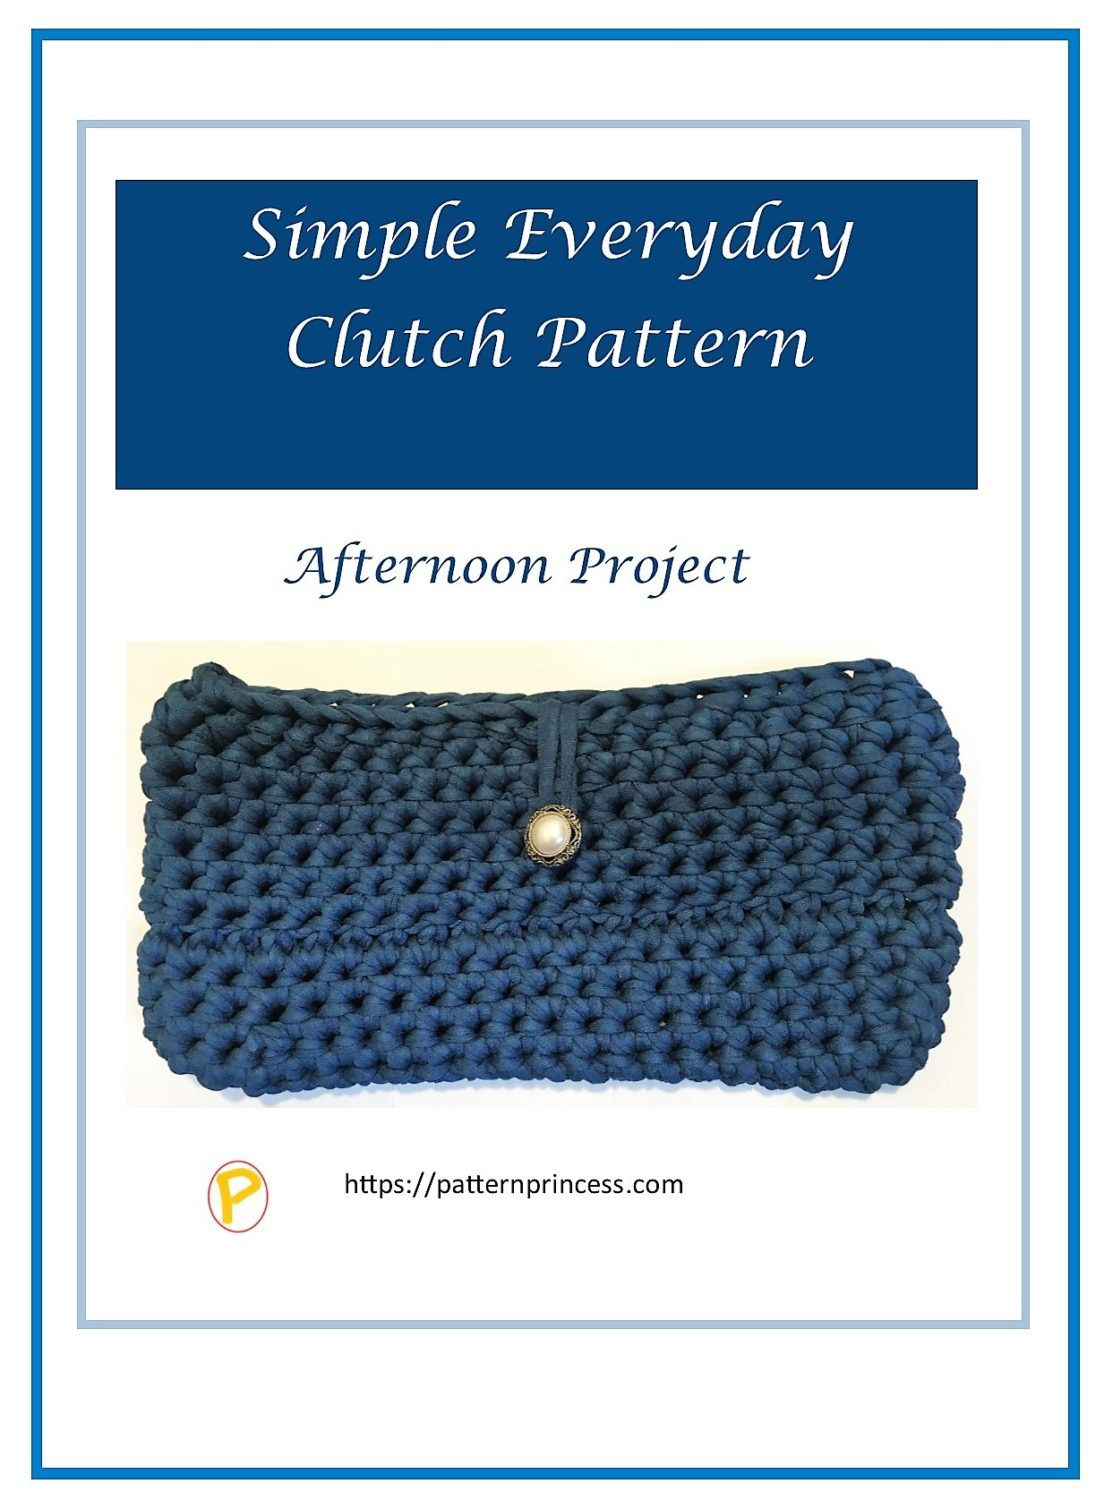 Simple Everyday Clutch Pattern